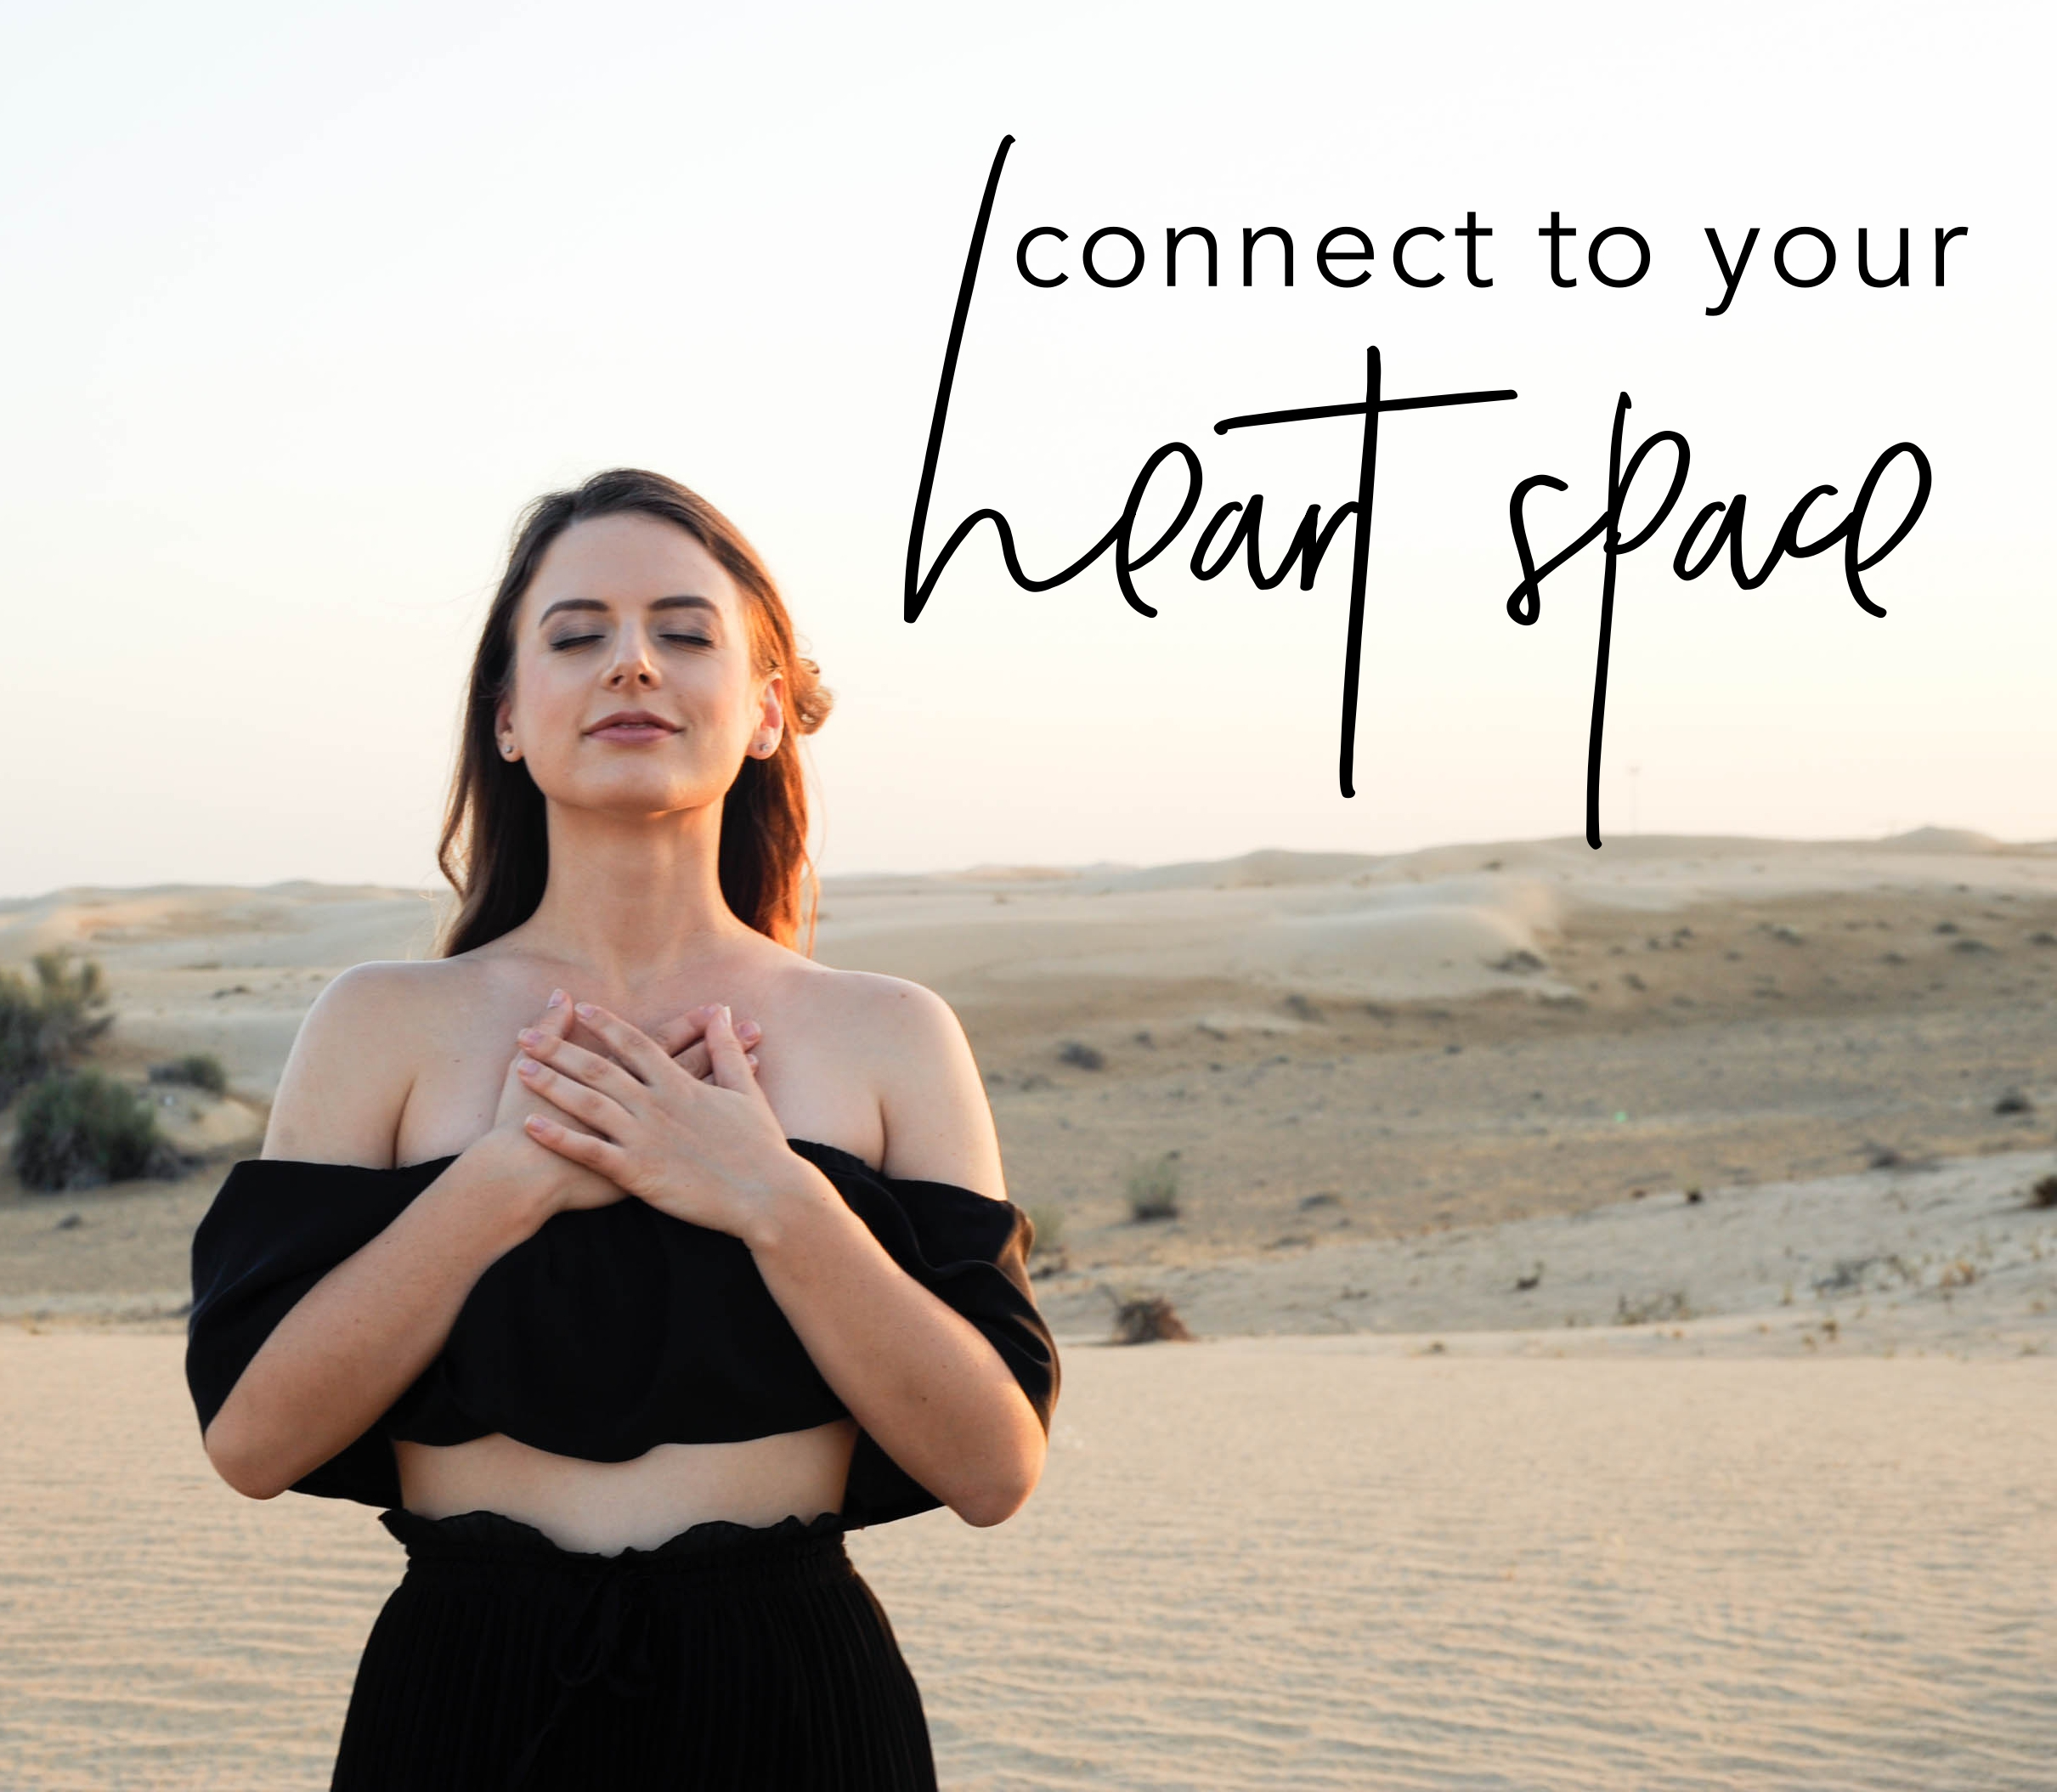 connect-to-your-heart-space-free-guided-meditation-sarah-lewis